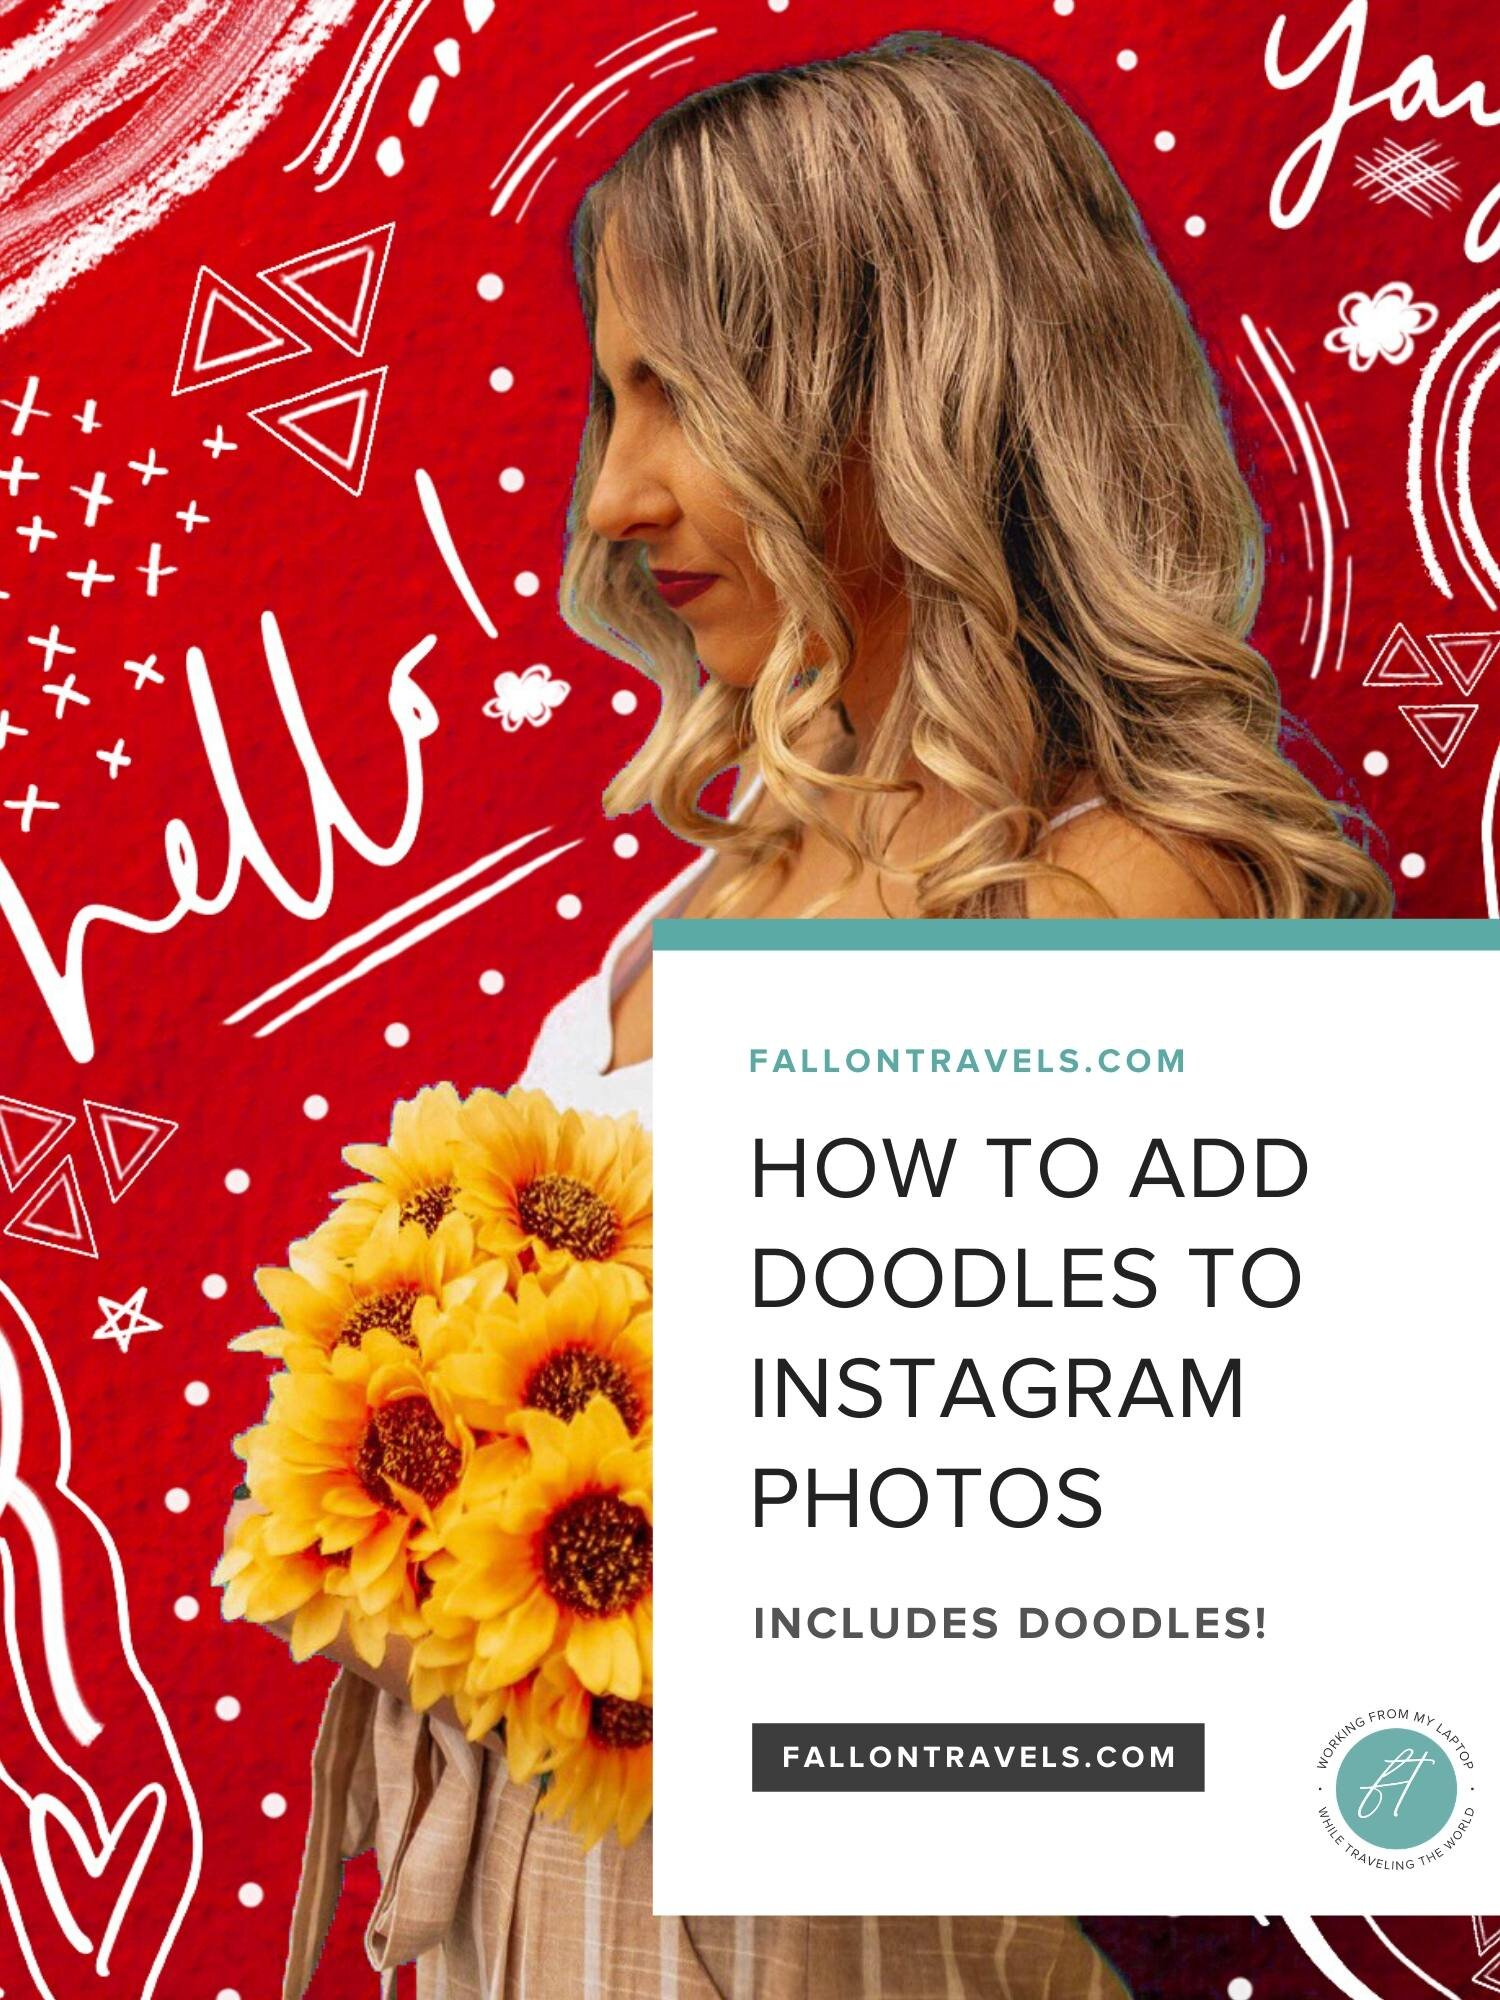 add fun doodles and outlines to instagram photos